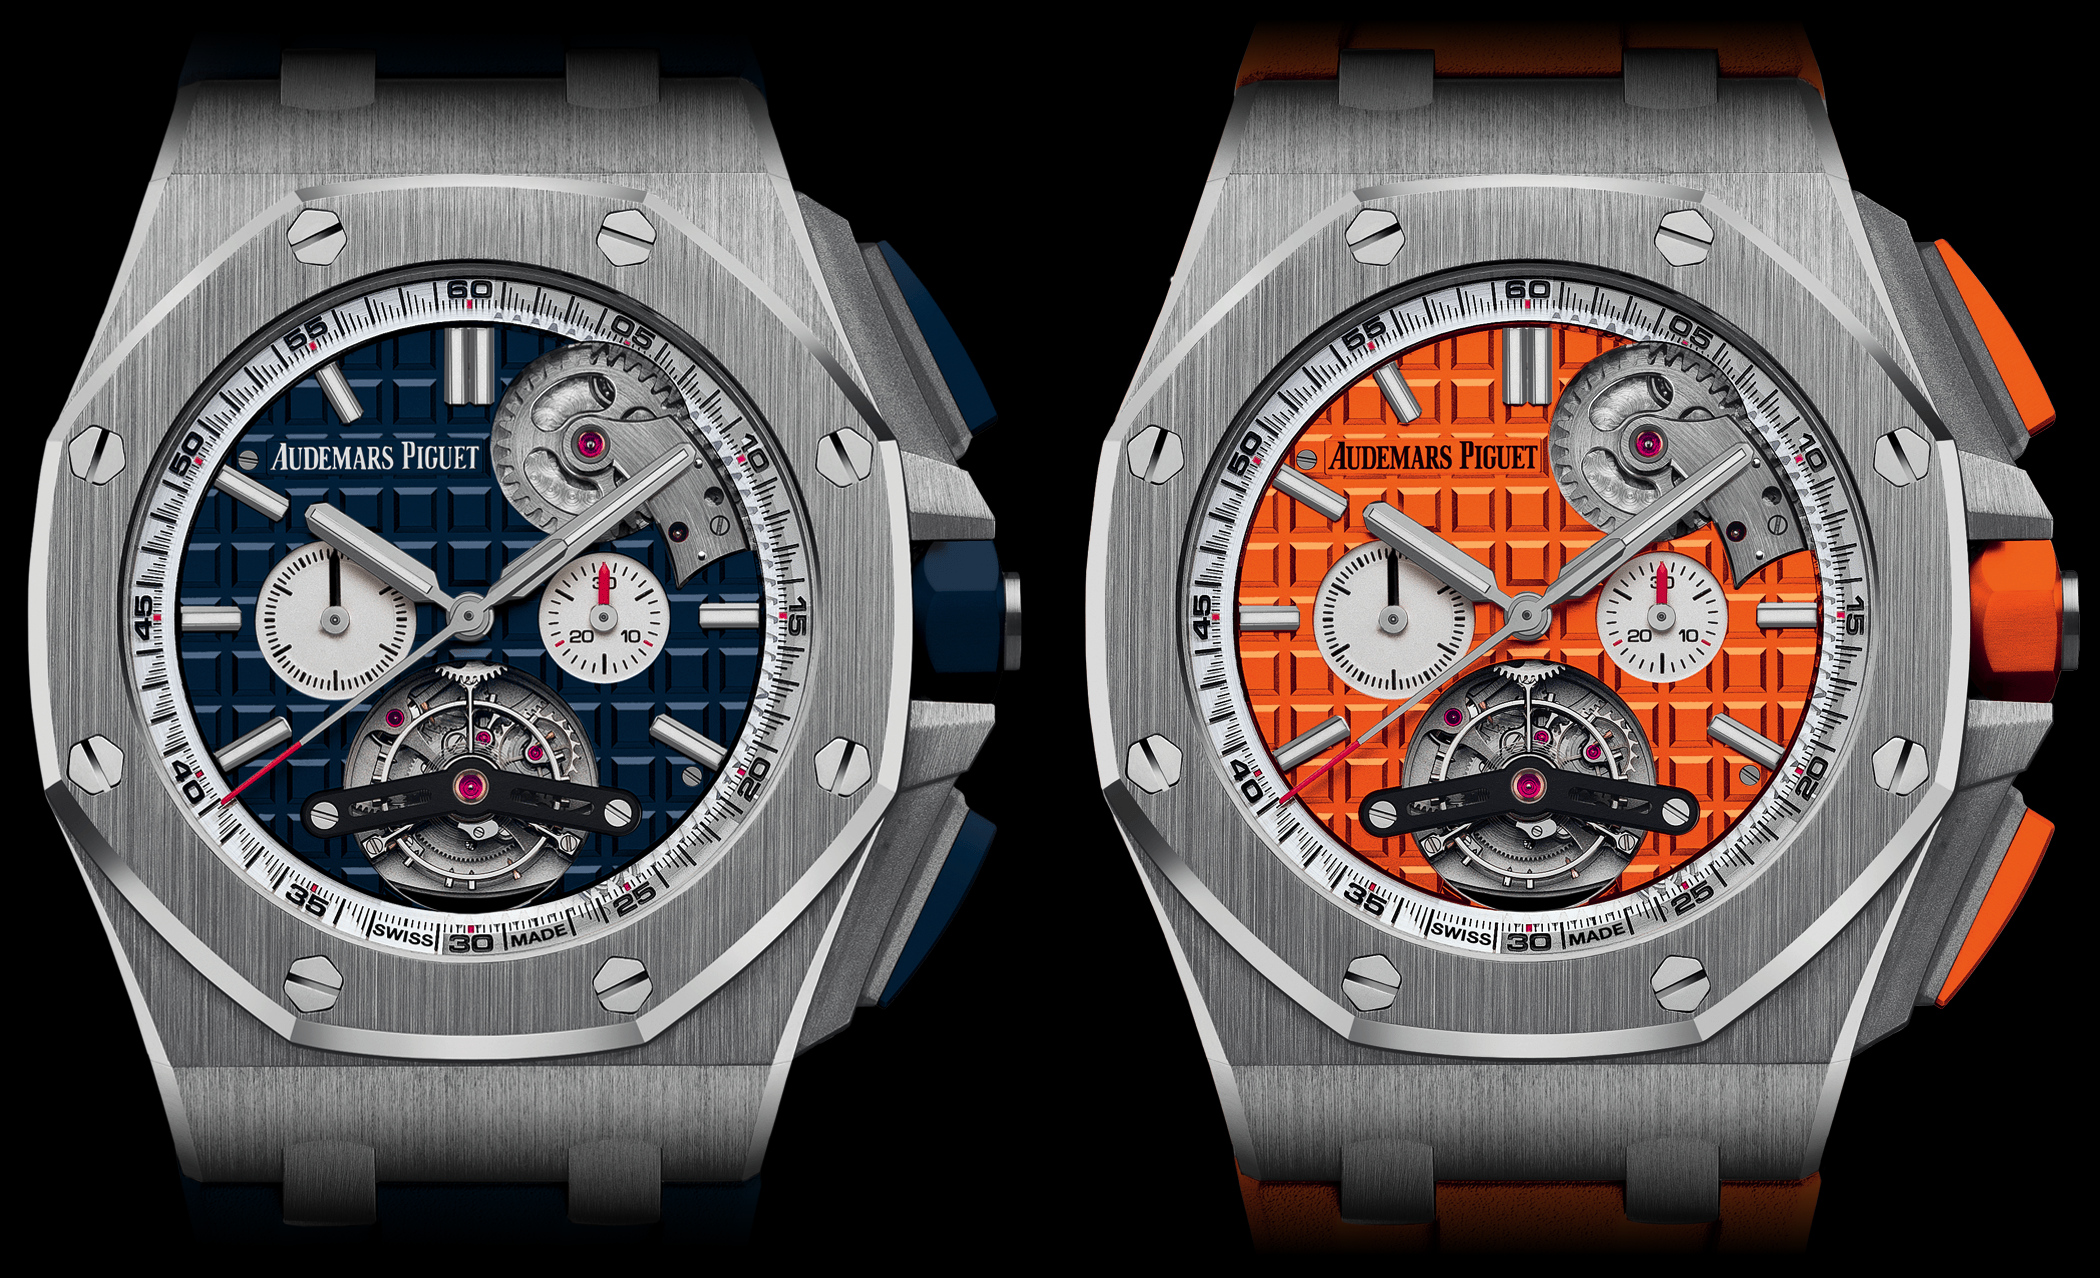 Audemars Piguet Royal Oak Offshore Ref. 26540ST